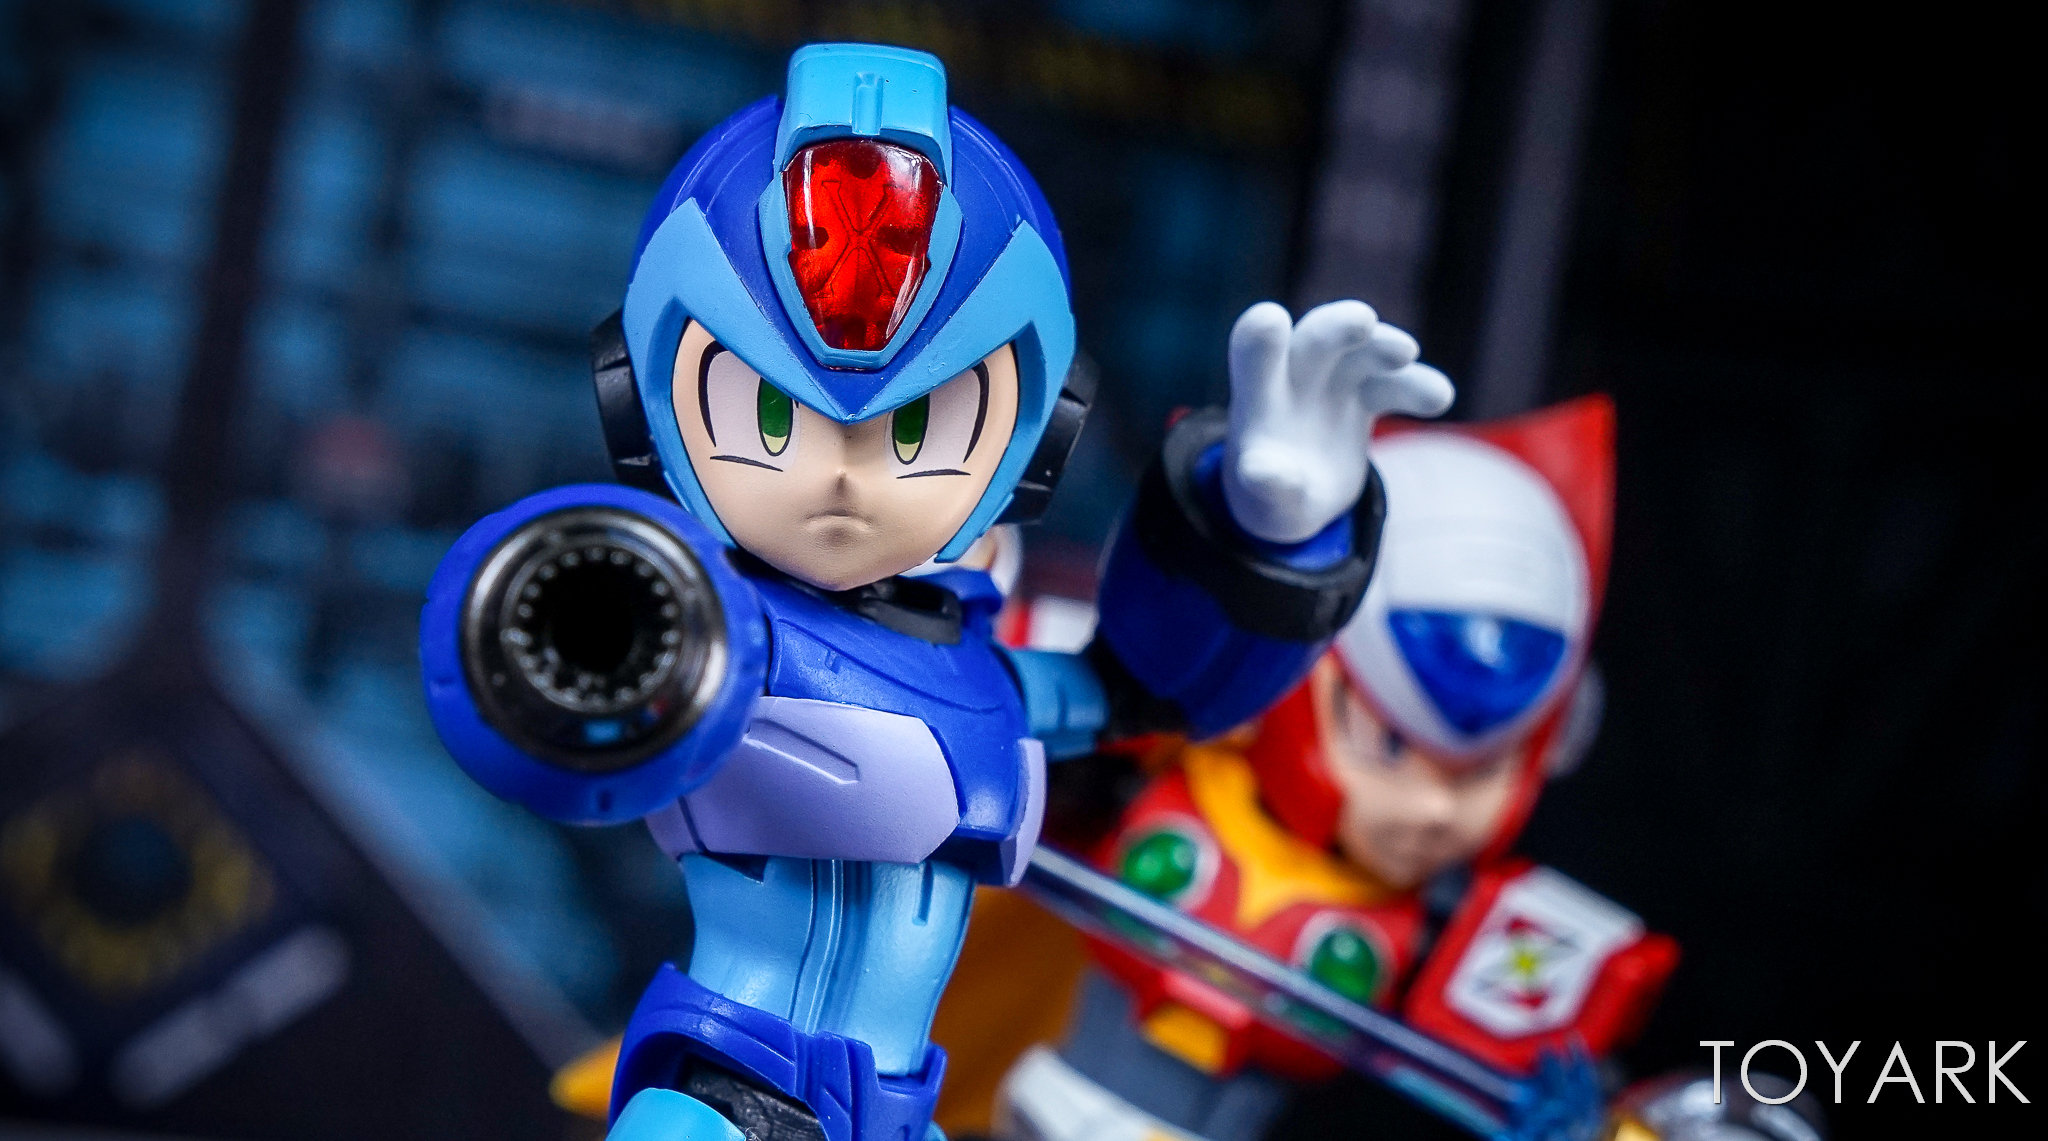 http://news.toyark.com/wp-content/uploads/sites/4/2017/11/Mega-Man-X-NX-Edge-Style-042.jpg